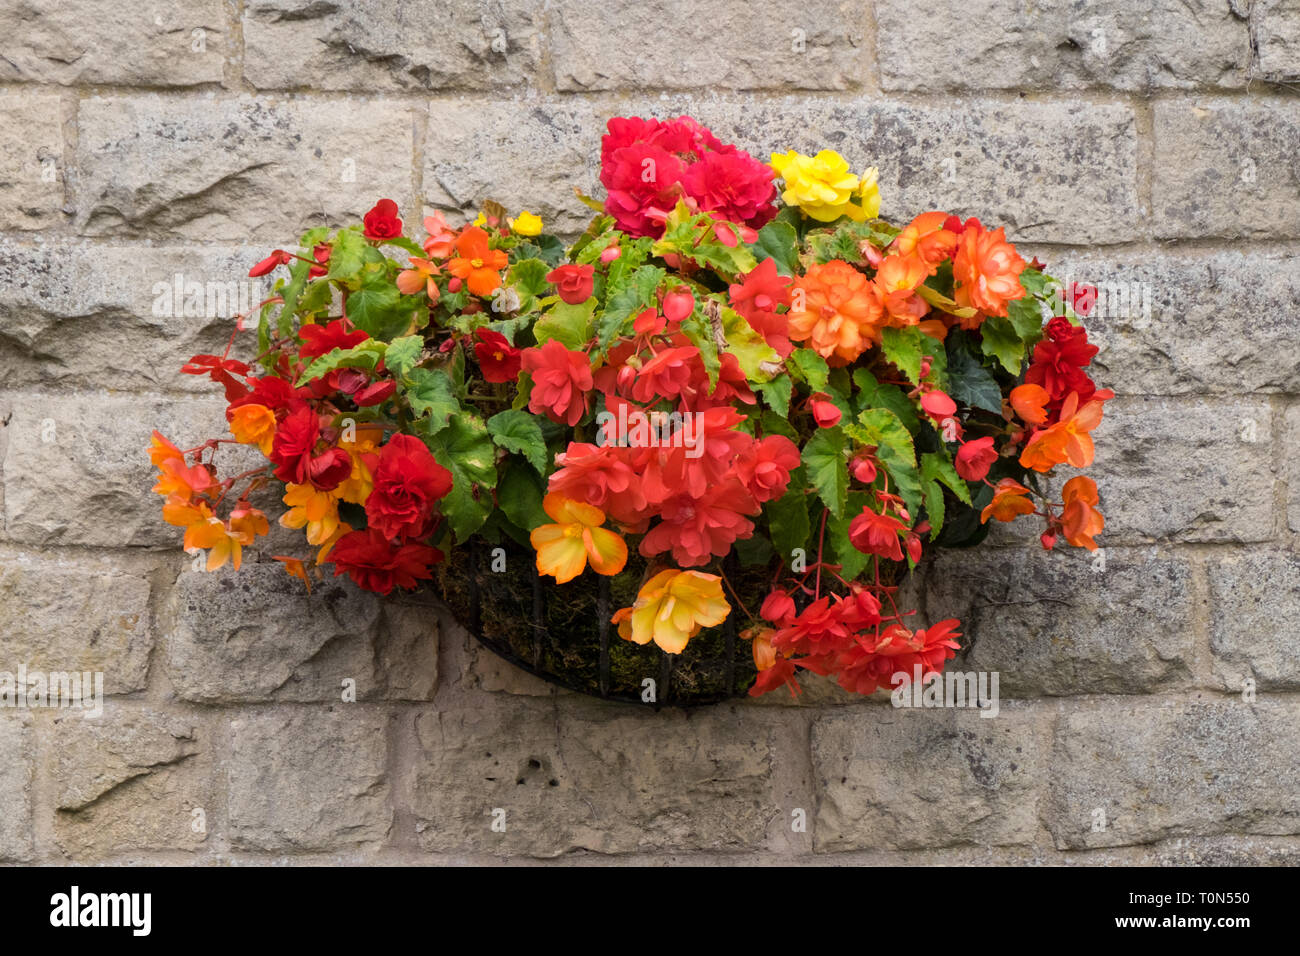 Hanging basket full of orange begonias hanging outside as a decoration on the wall of a building. - Stock Image